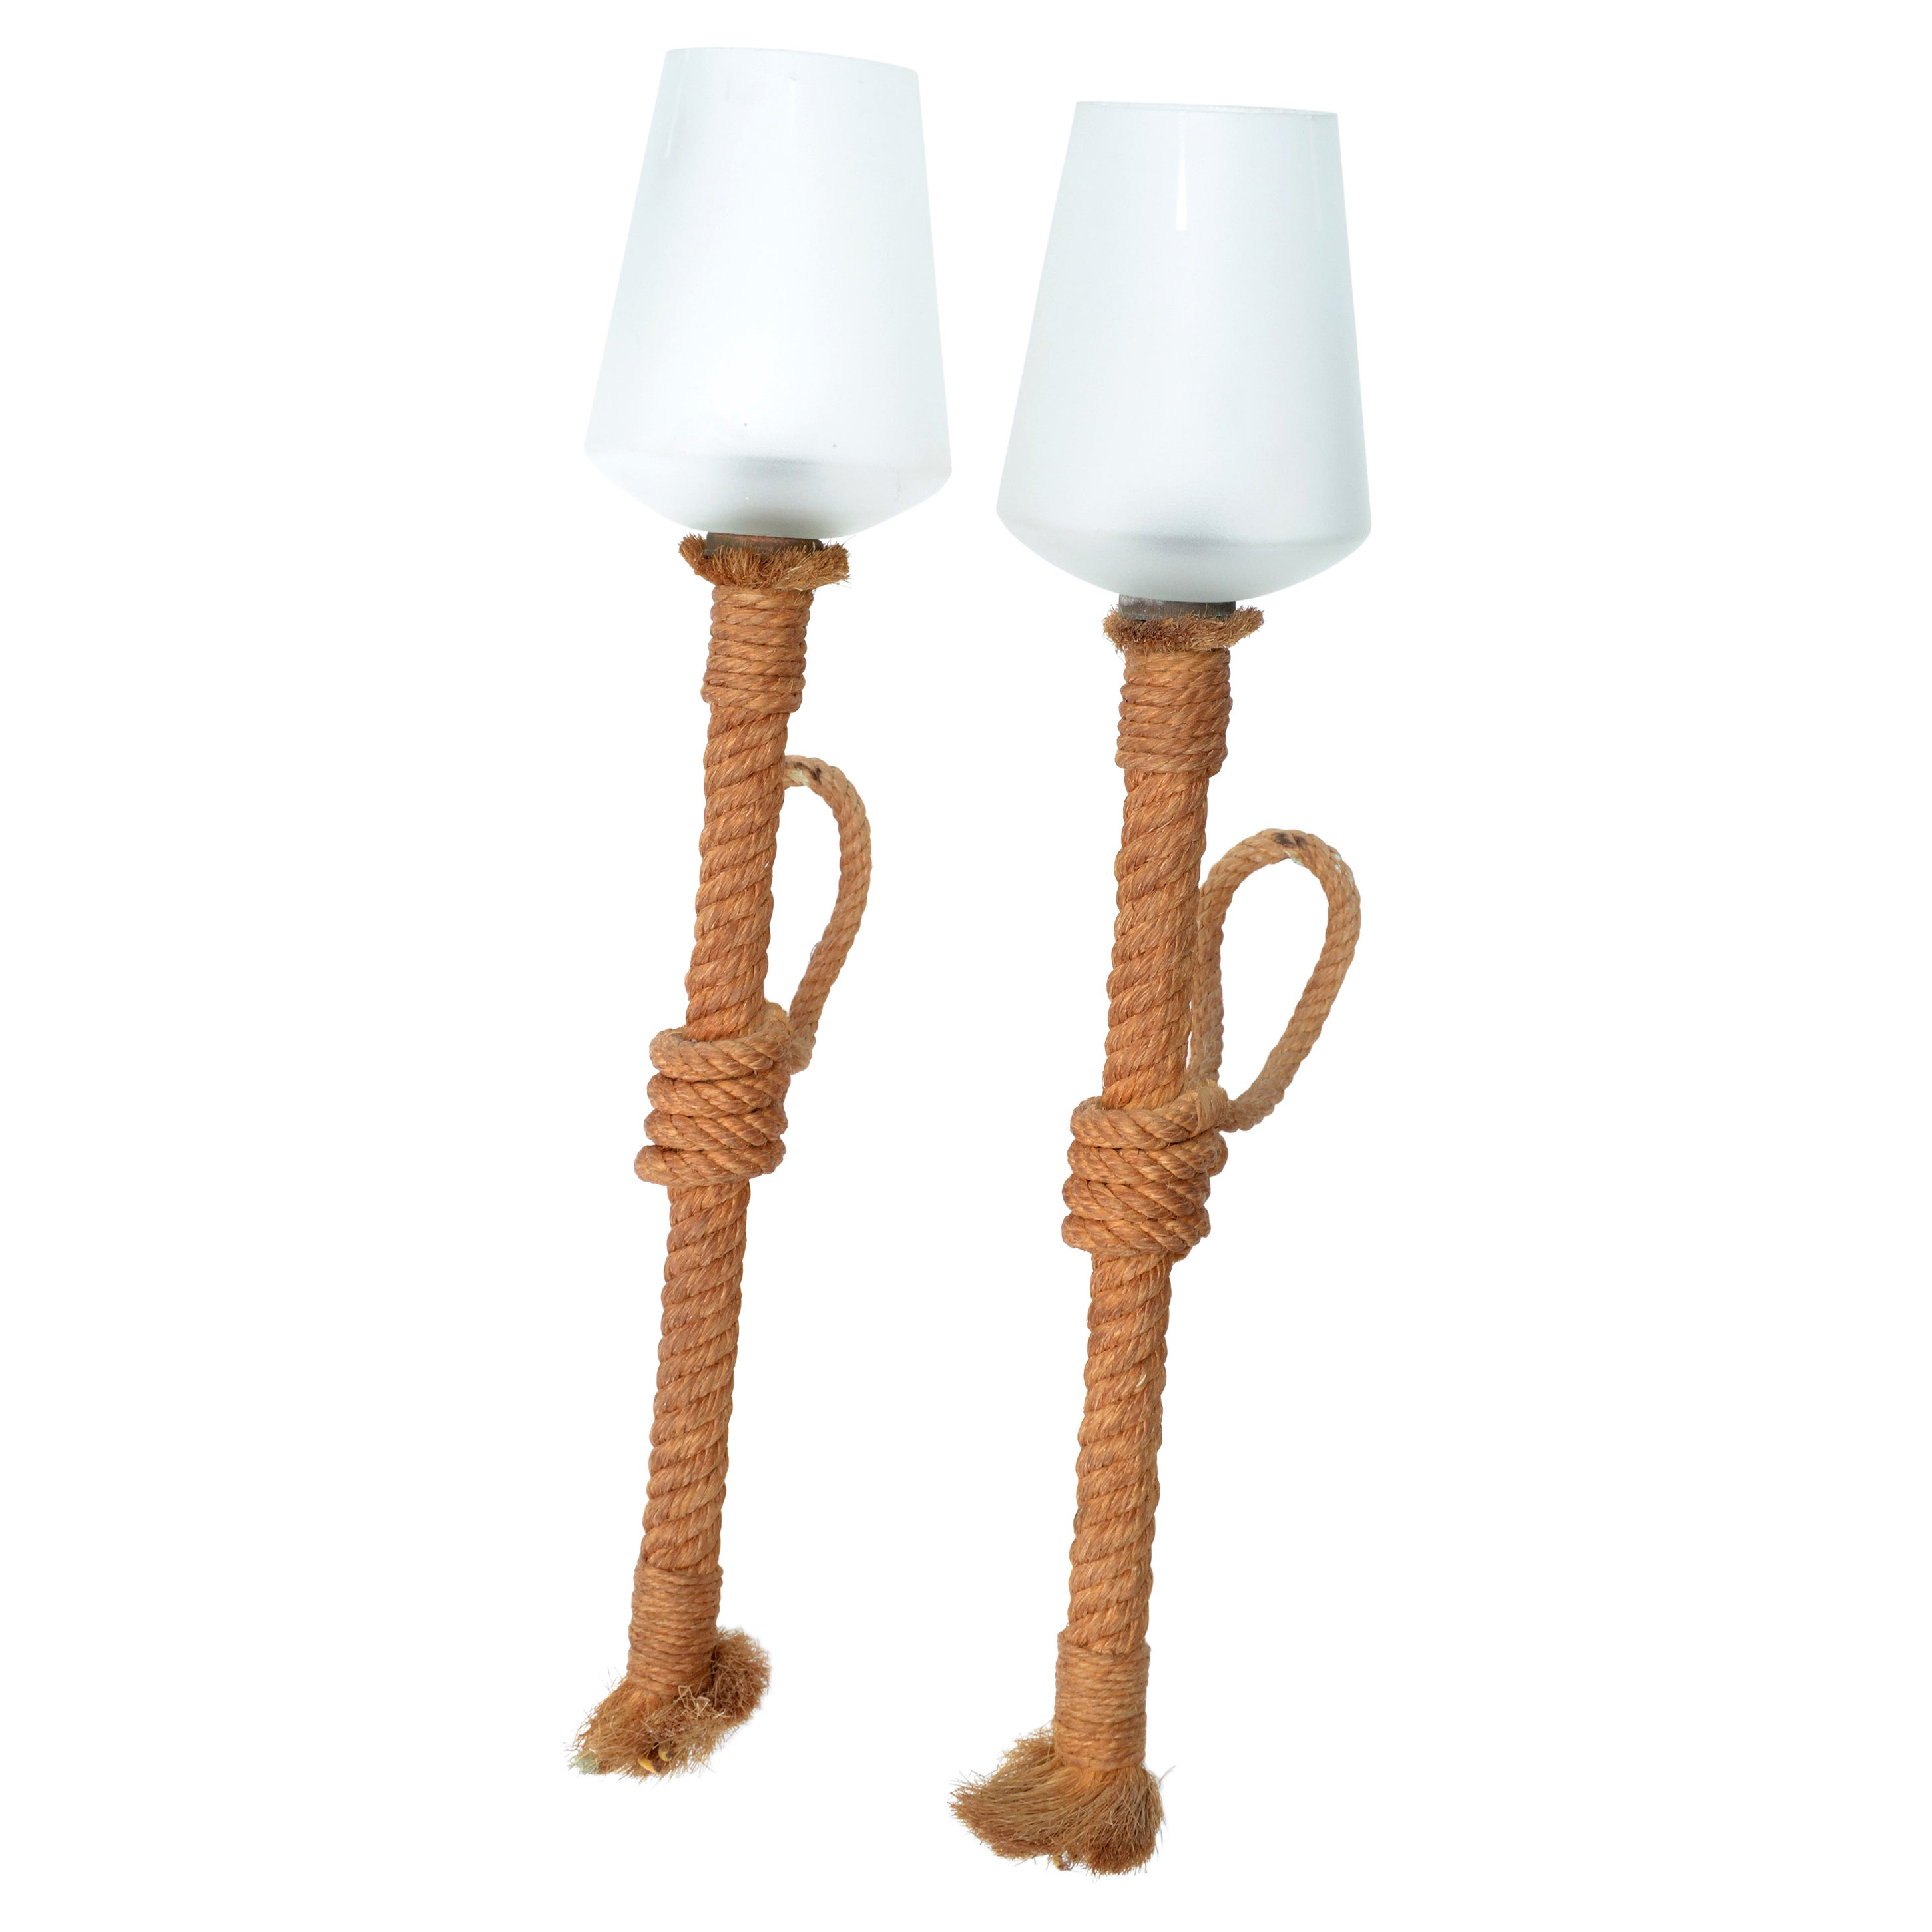 Audoux and Minet Nautical Rope Sconce Frosted Glass Shades France, 1960, Pair